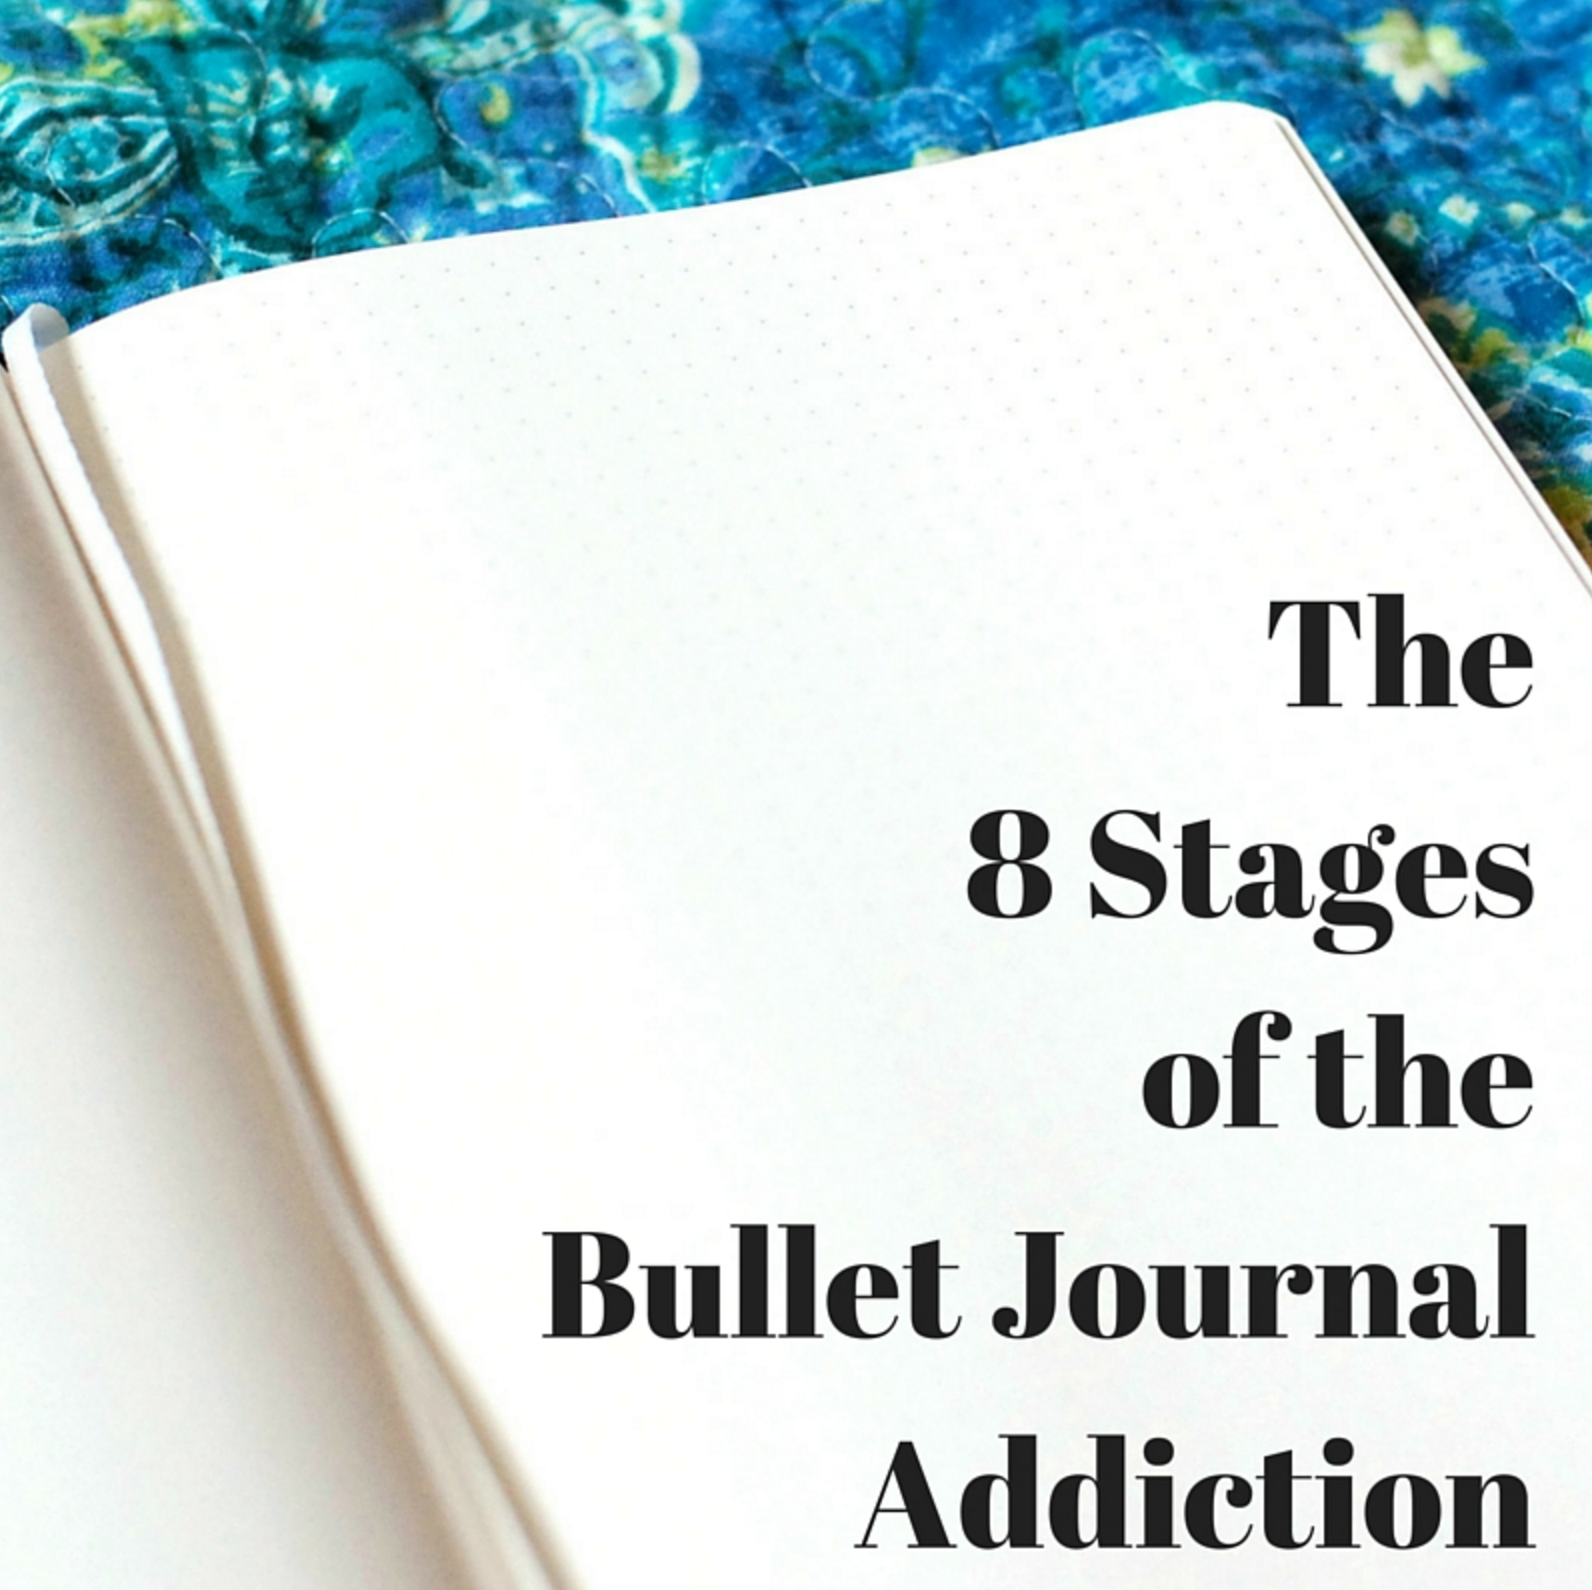 t he 8 stages of the bullet journal addiction